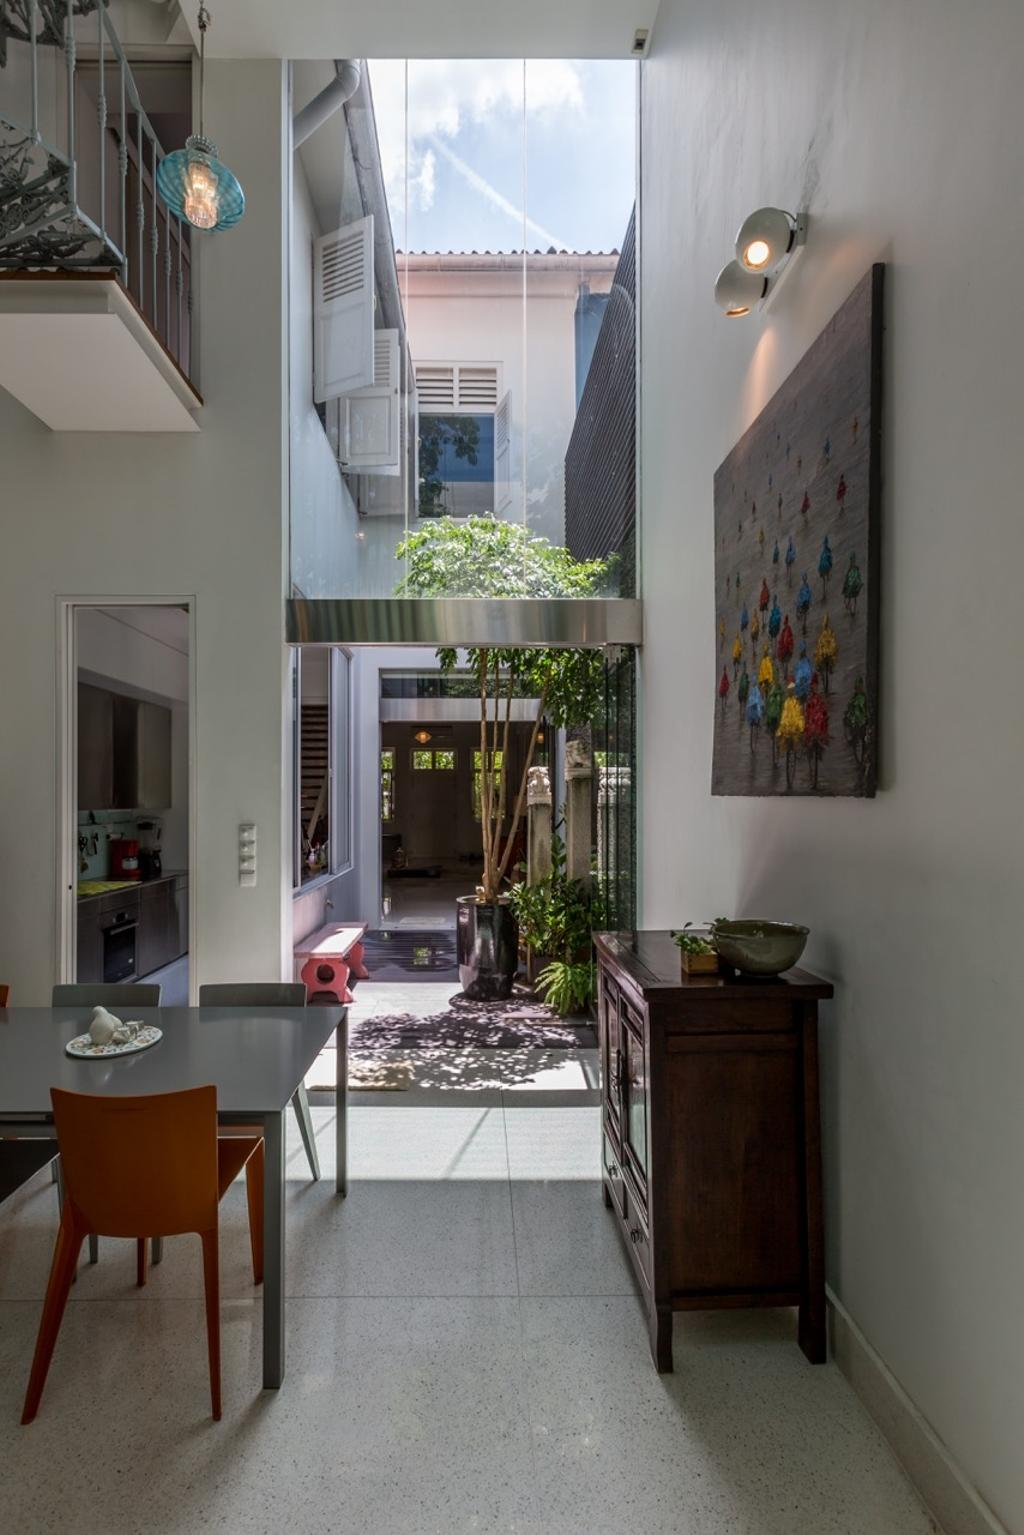 Contemporary, Landed, Dining Room, Onan Road, Architect, EZRA Architects, Wallart, Wall Art, Wooden Display Cabinet, Hanging Light, Pendant Light, Red Dining Chair, Full Length Glass Window, Flora, Jar, Plant, Potted Plant, Pottery, Vase